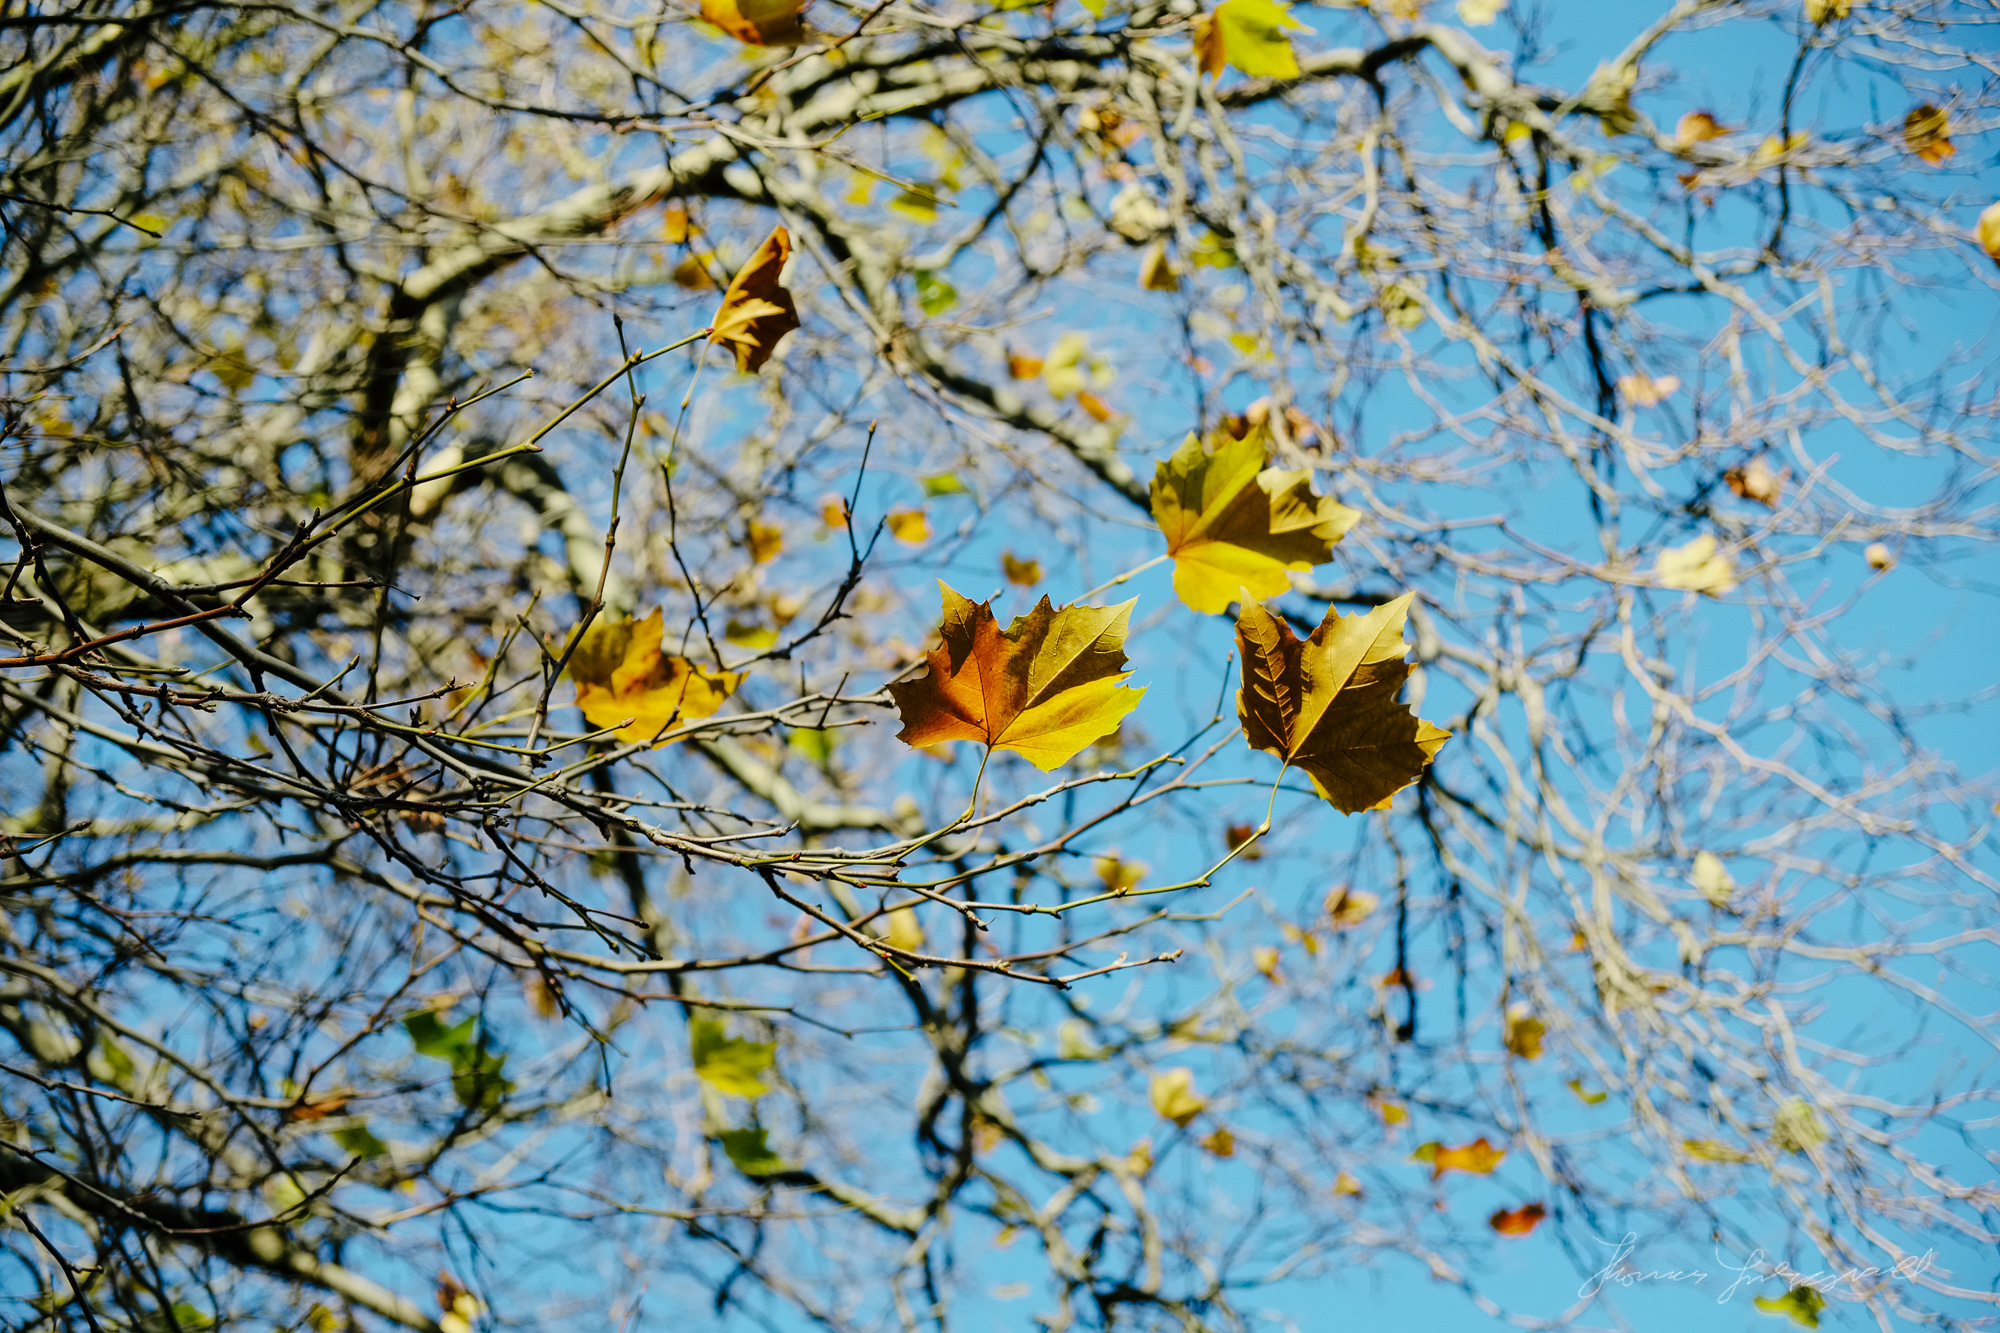 The last few leaves - Taken with a Fuji XE1